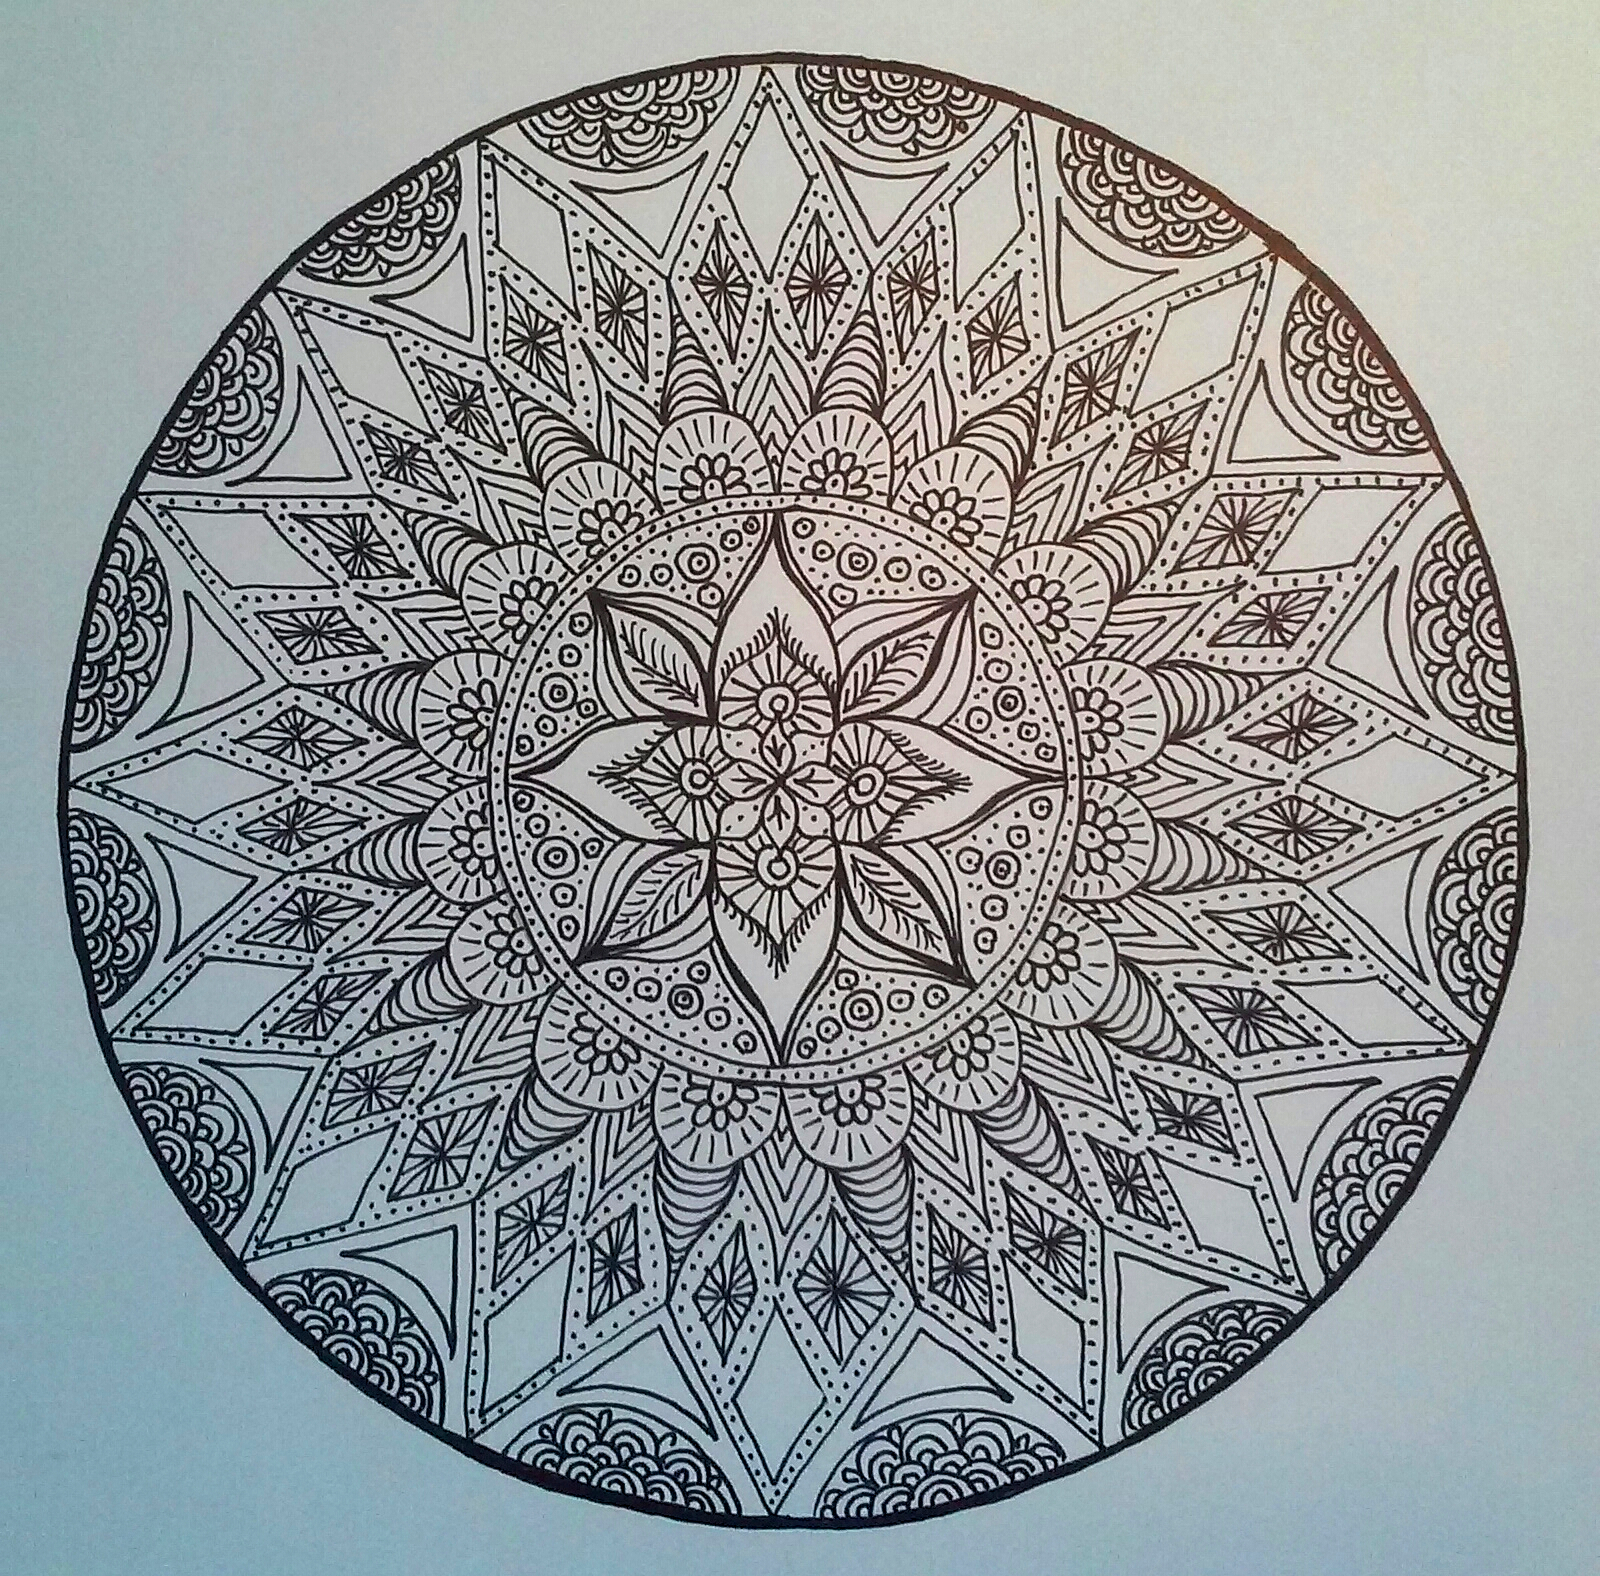 A Mandala for New Year's Day